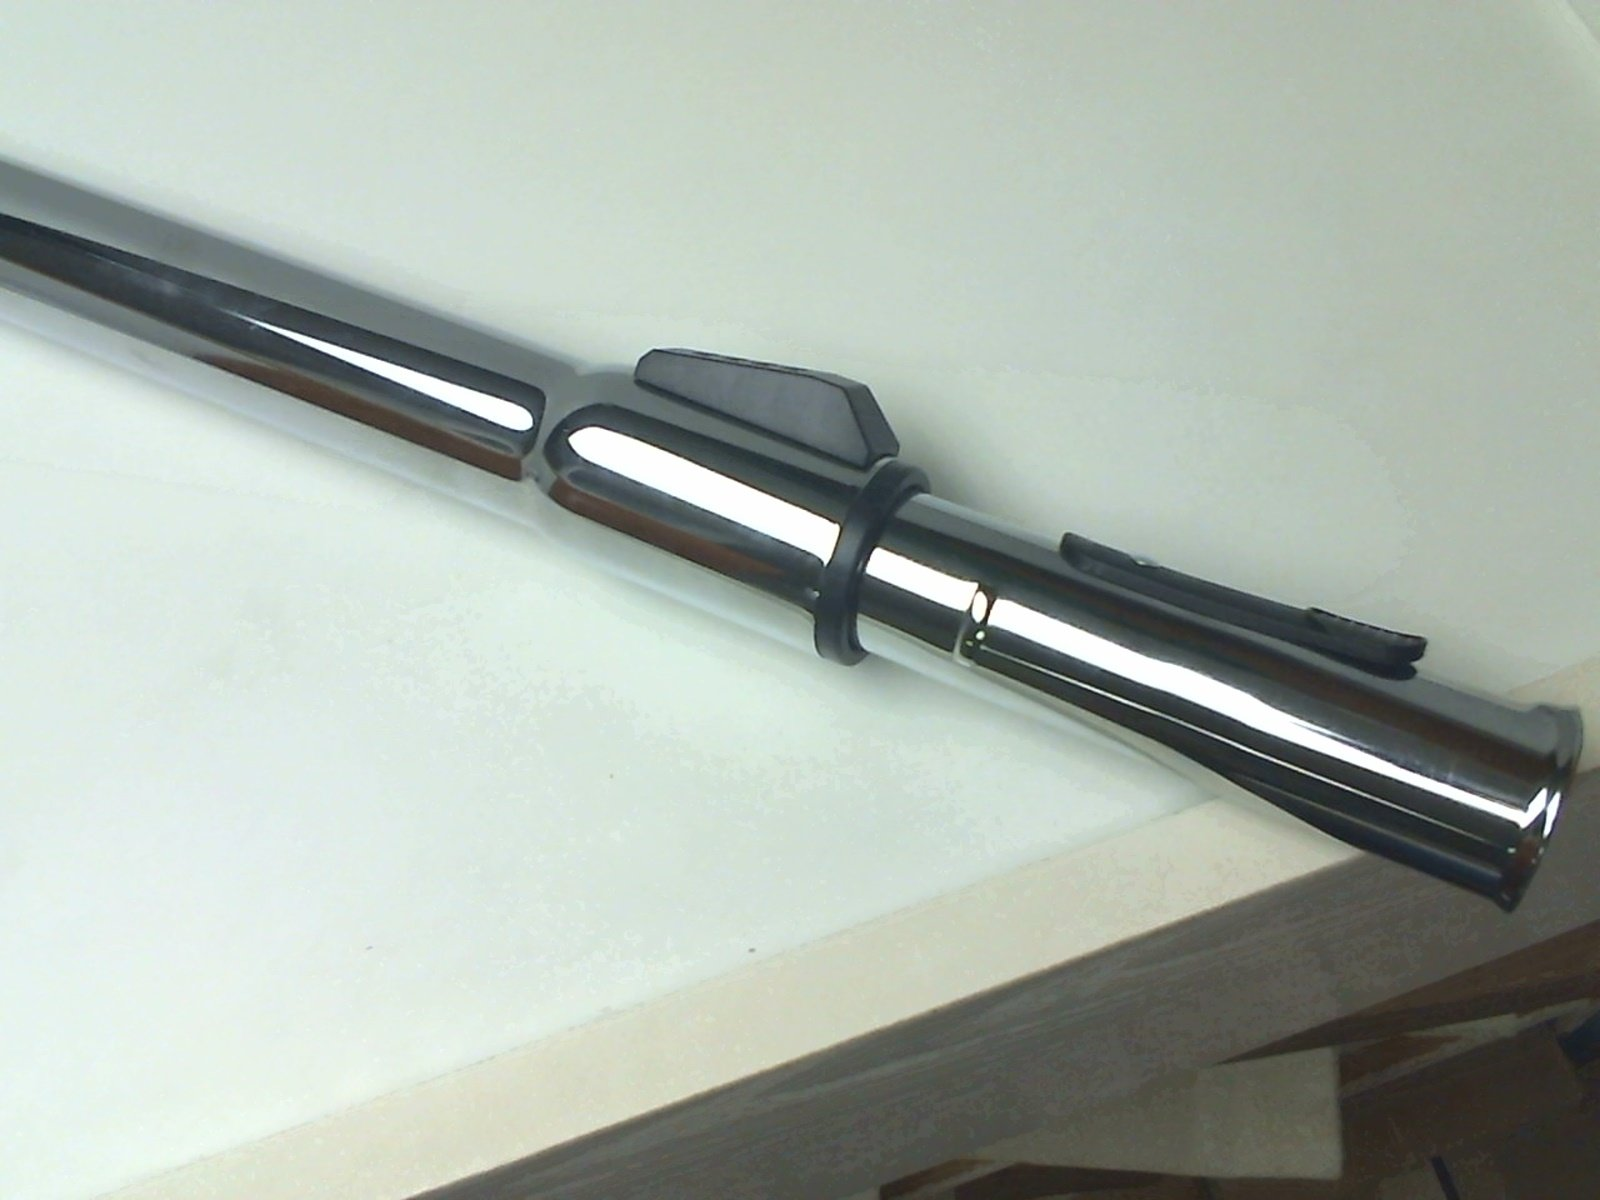 NON ELECTRIC METAL TELESCOPIC WAND WITH BUTTON